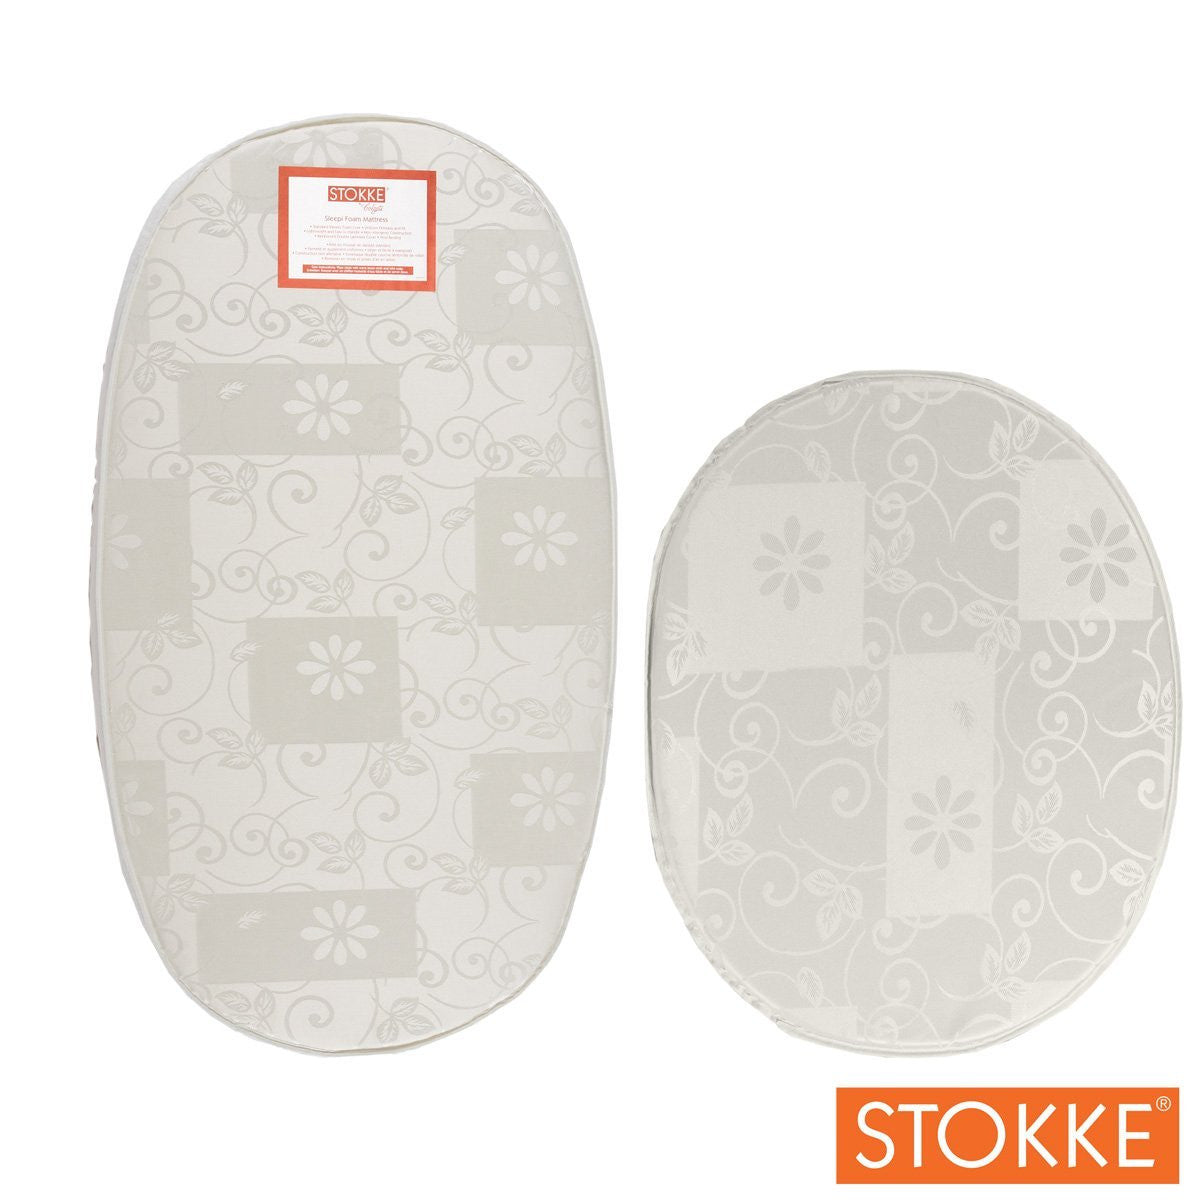 Stokke Sleepi Mini Mattress